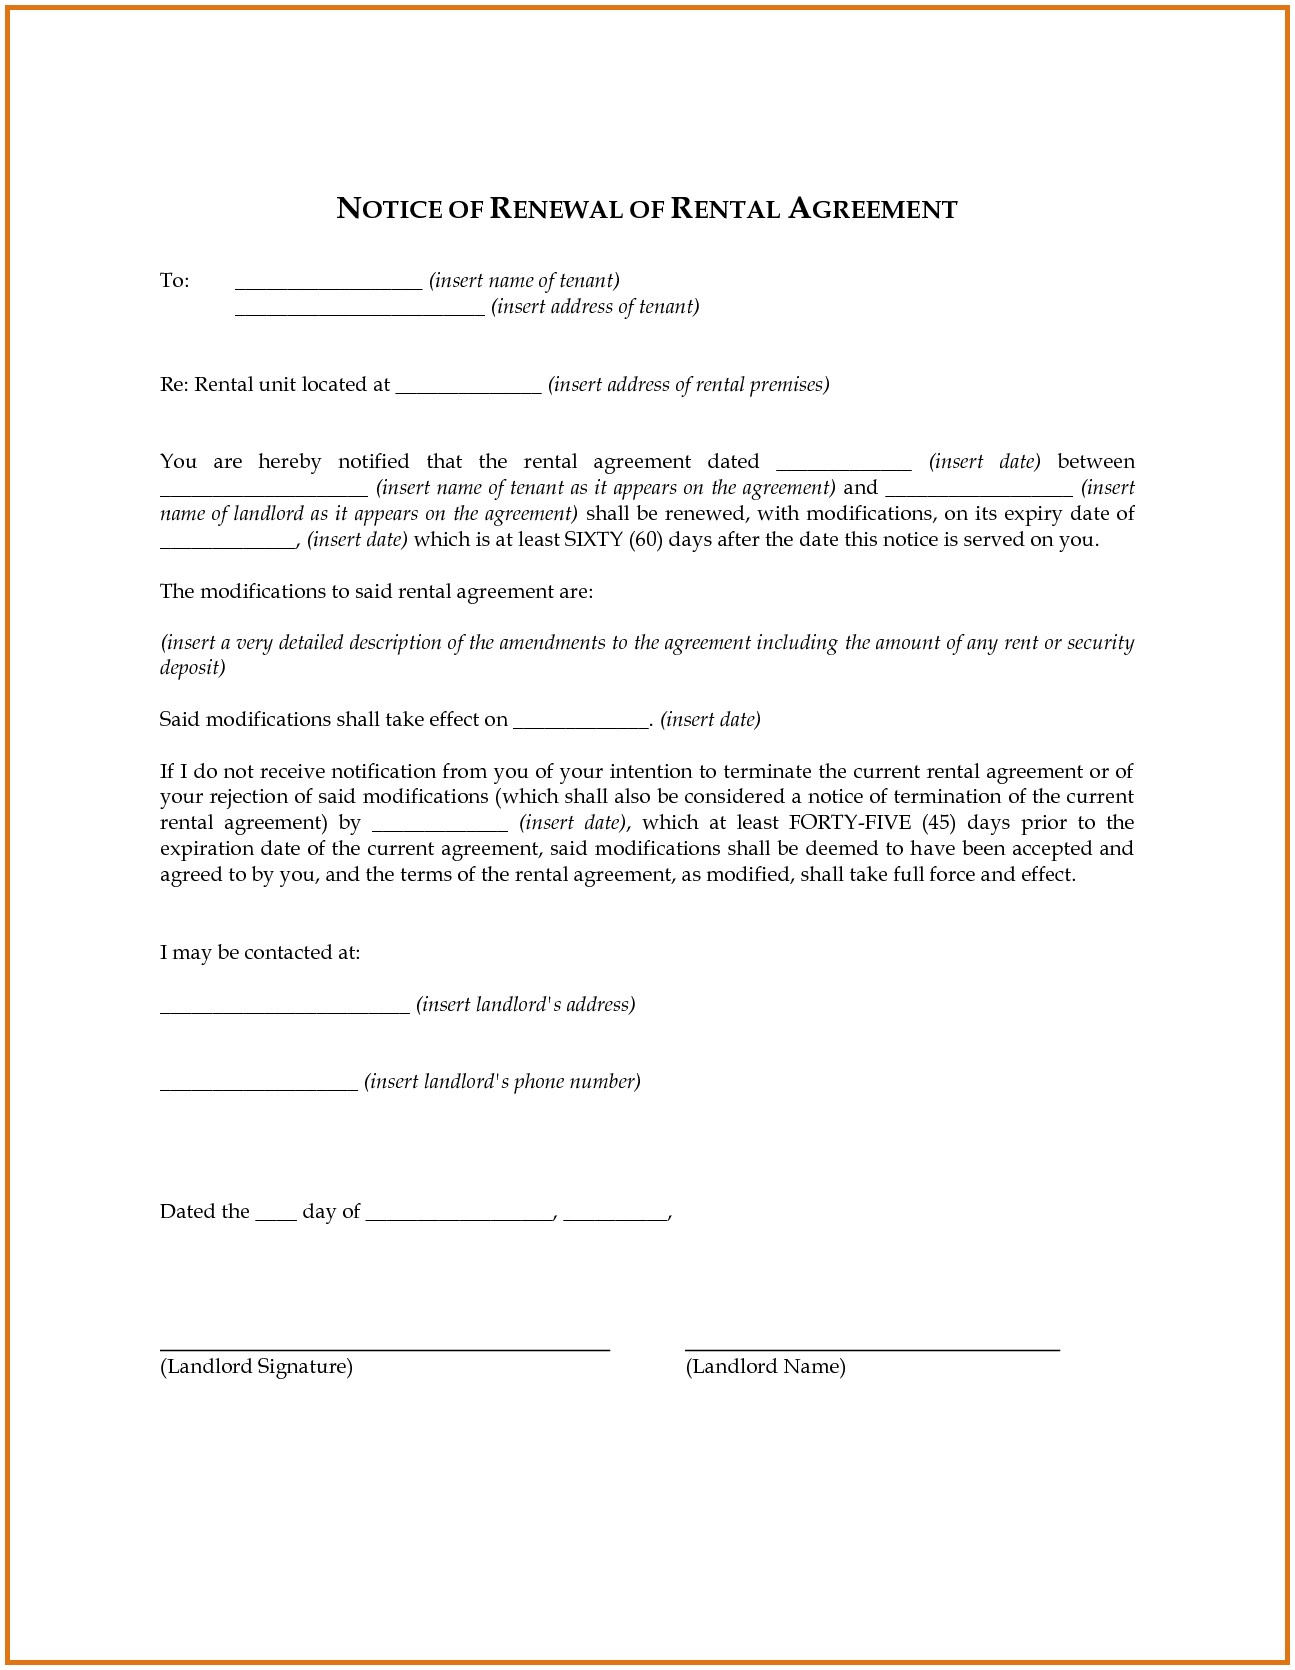 Lease Renewal Letter Template - Lease Renewal Letter Lease Renewal Letter – Careyhead